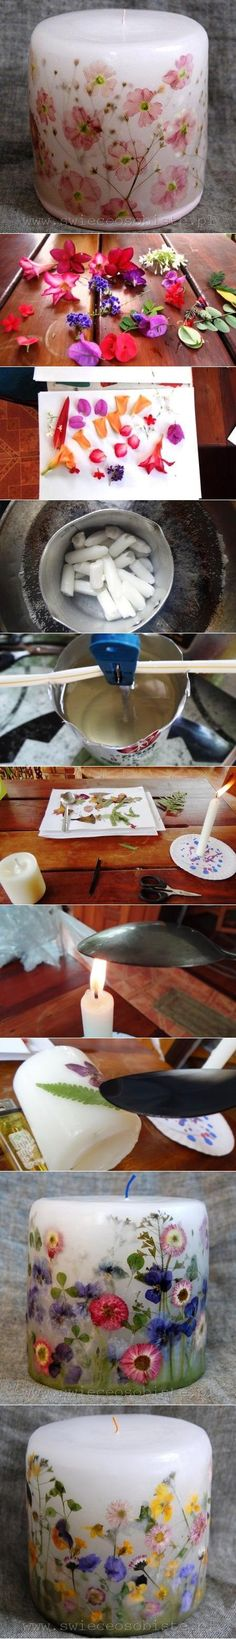 //DIY Flower Candle DIY Flower Candle #DIY&crafts